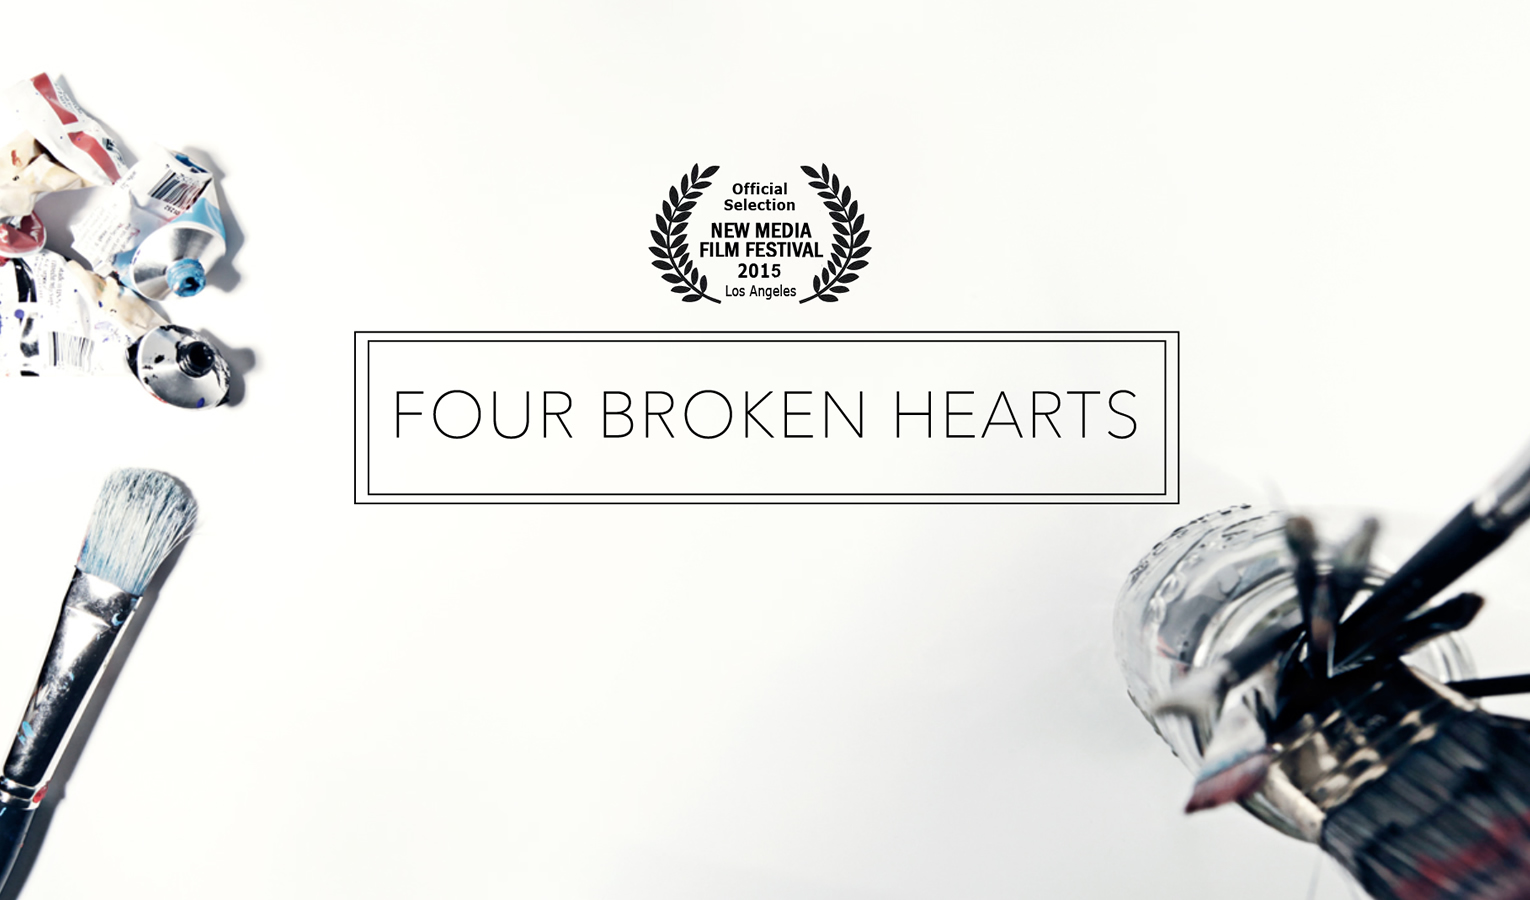 Four Broken Hearts officially premiered at the New Media Film Festival in Los Angeles in June 2015.